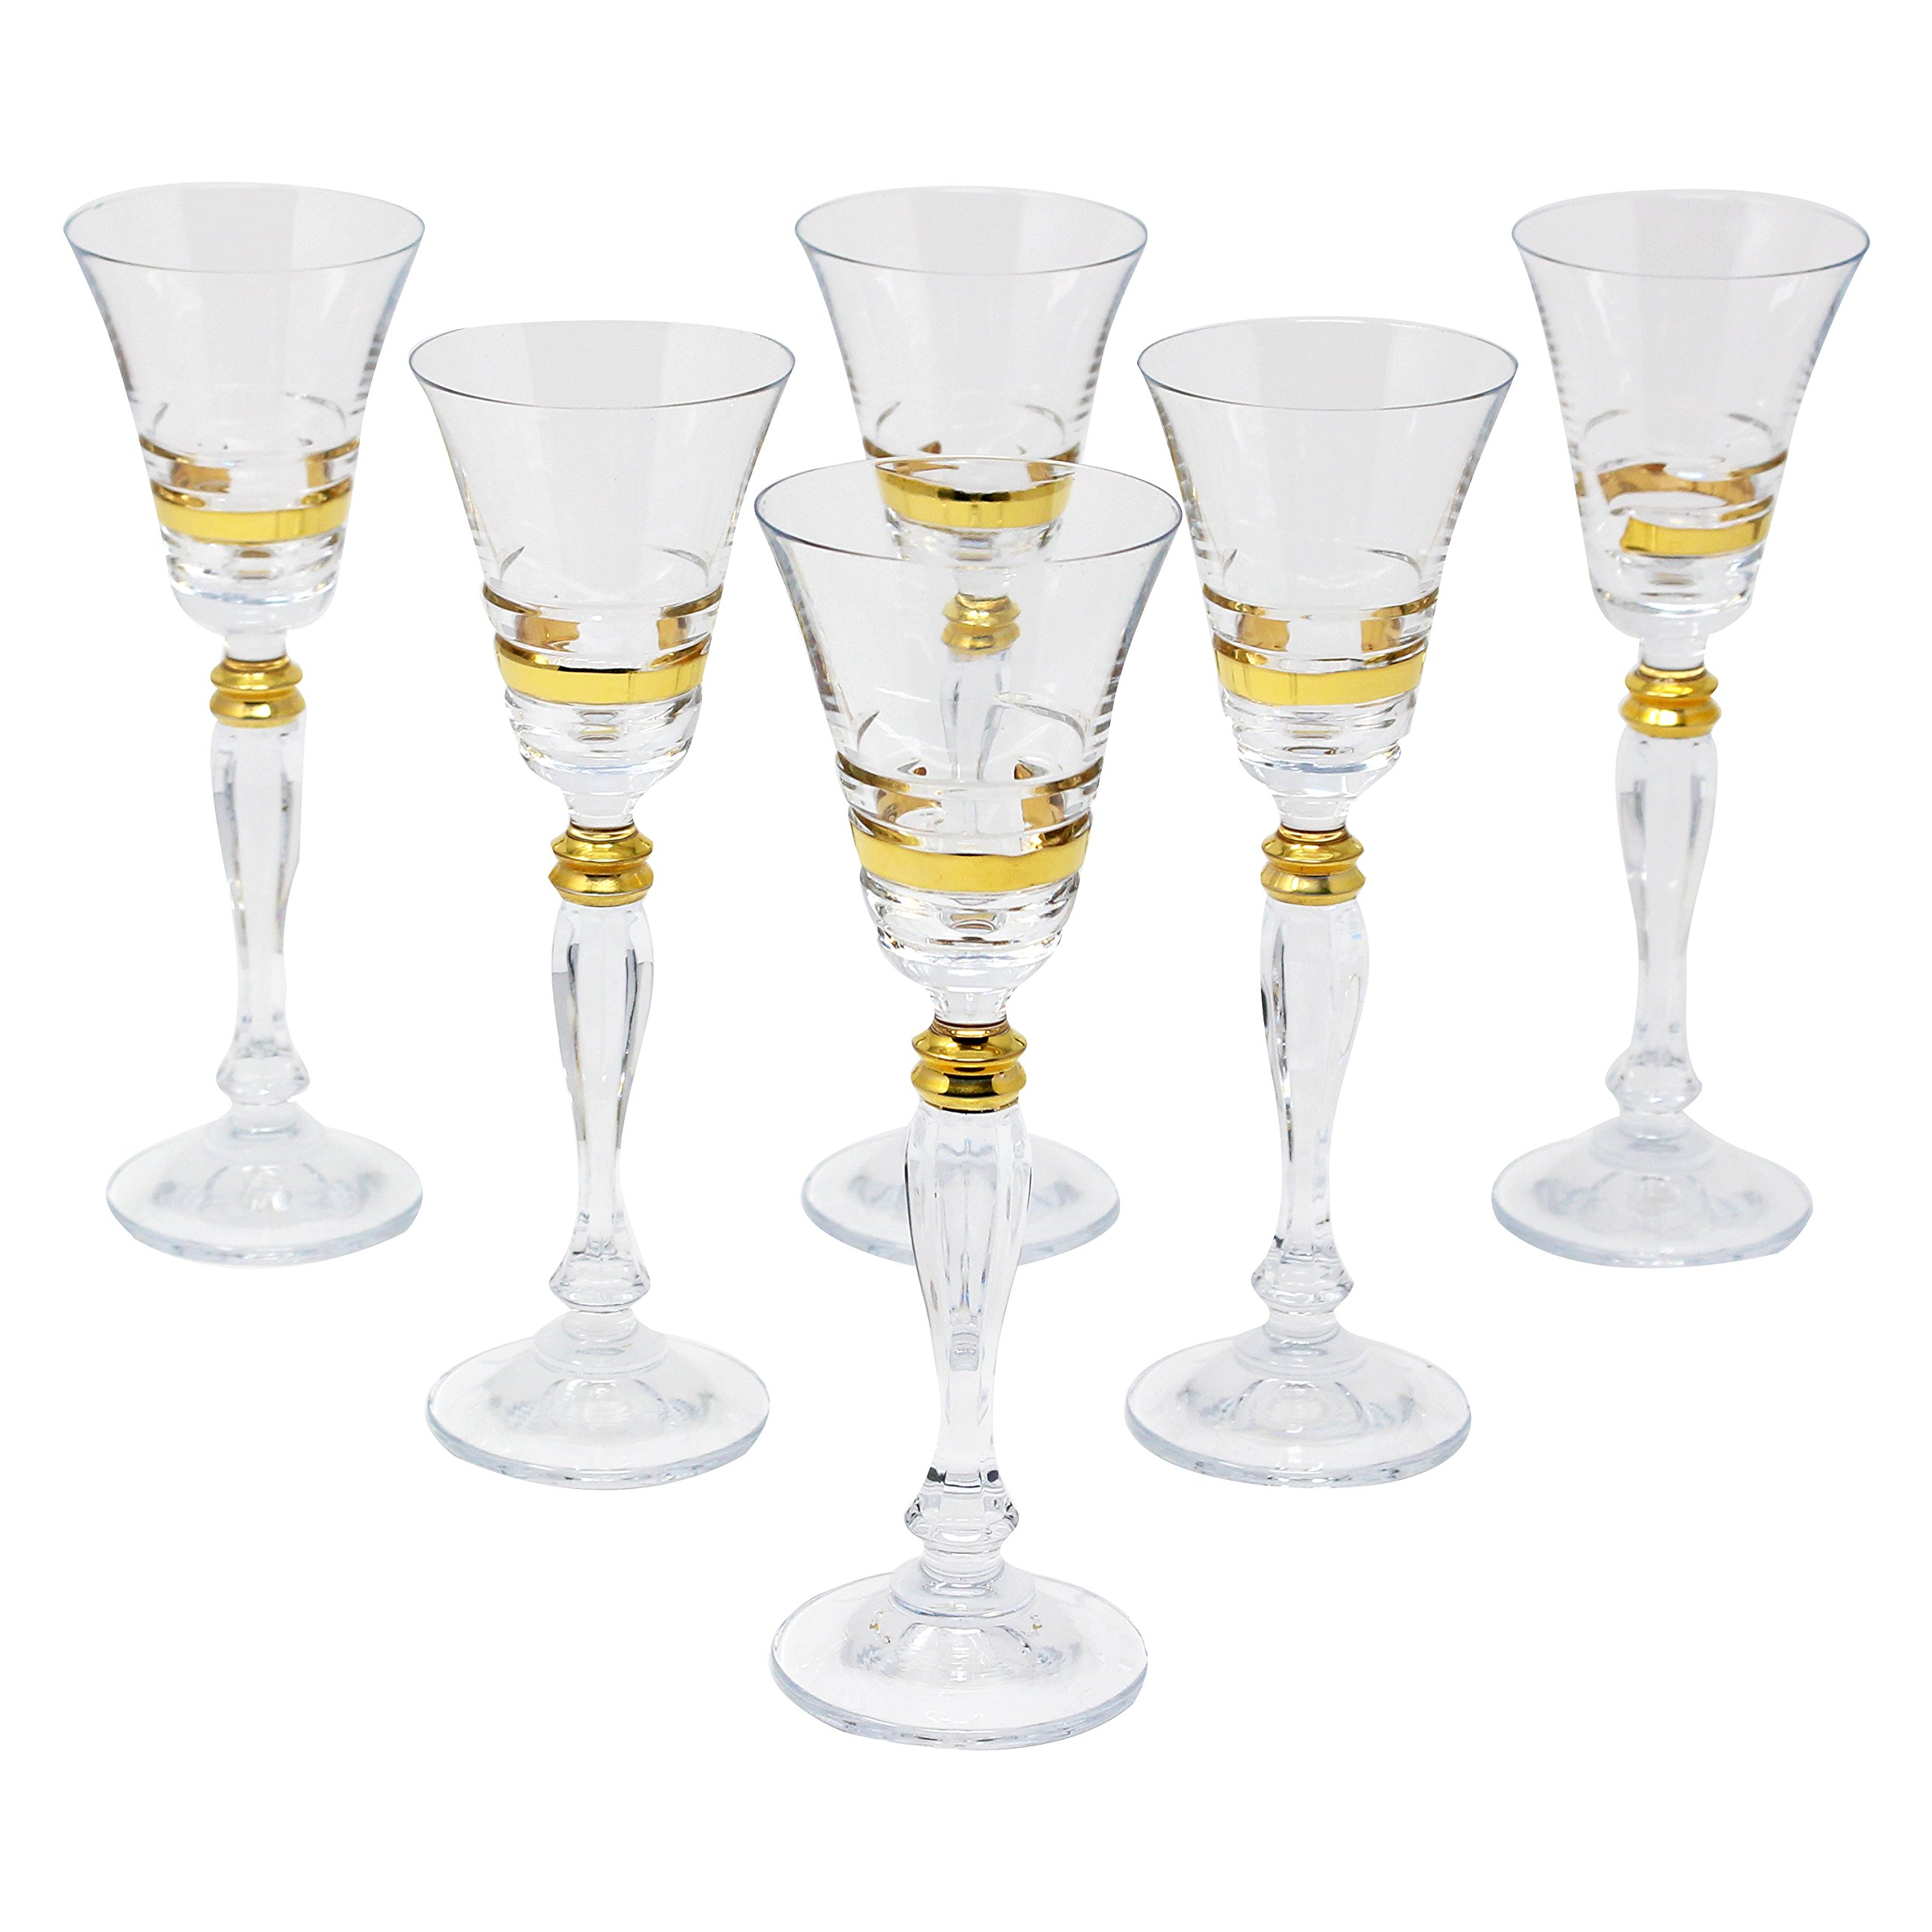 Glazze Crystal APP-078-GL Appalachia Luxury Crystal Liquor Glasses (Set of 6), Gold